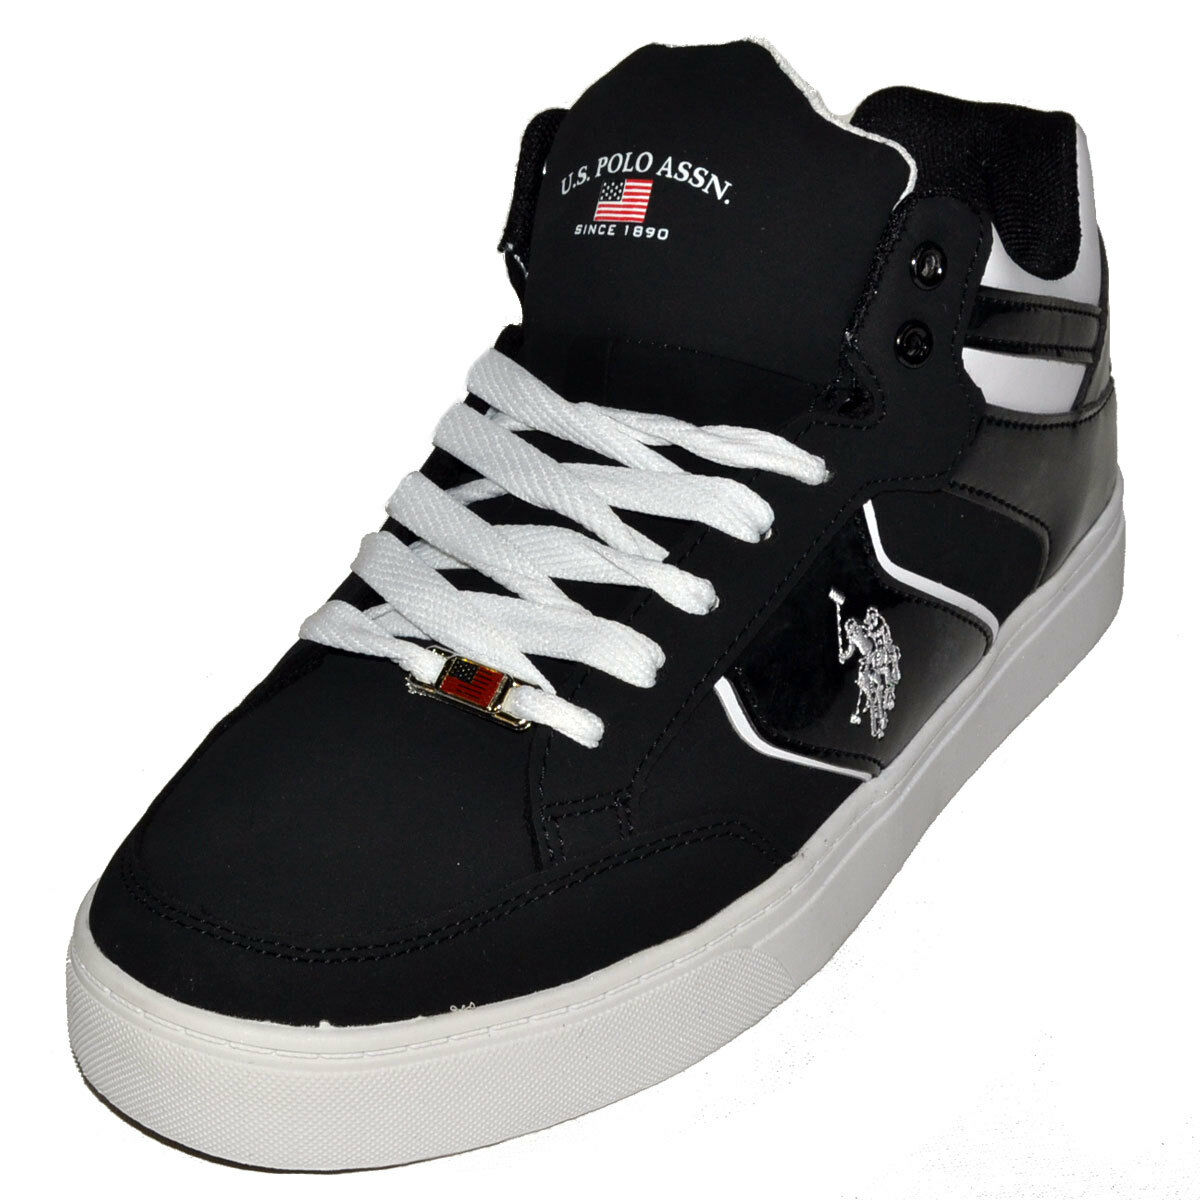 U.S. Polo Assn. shoes Blade Mens Casual Sneakers